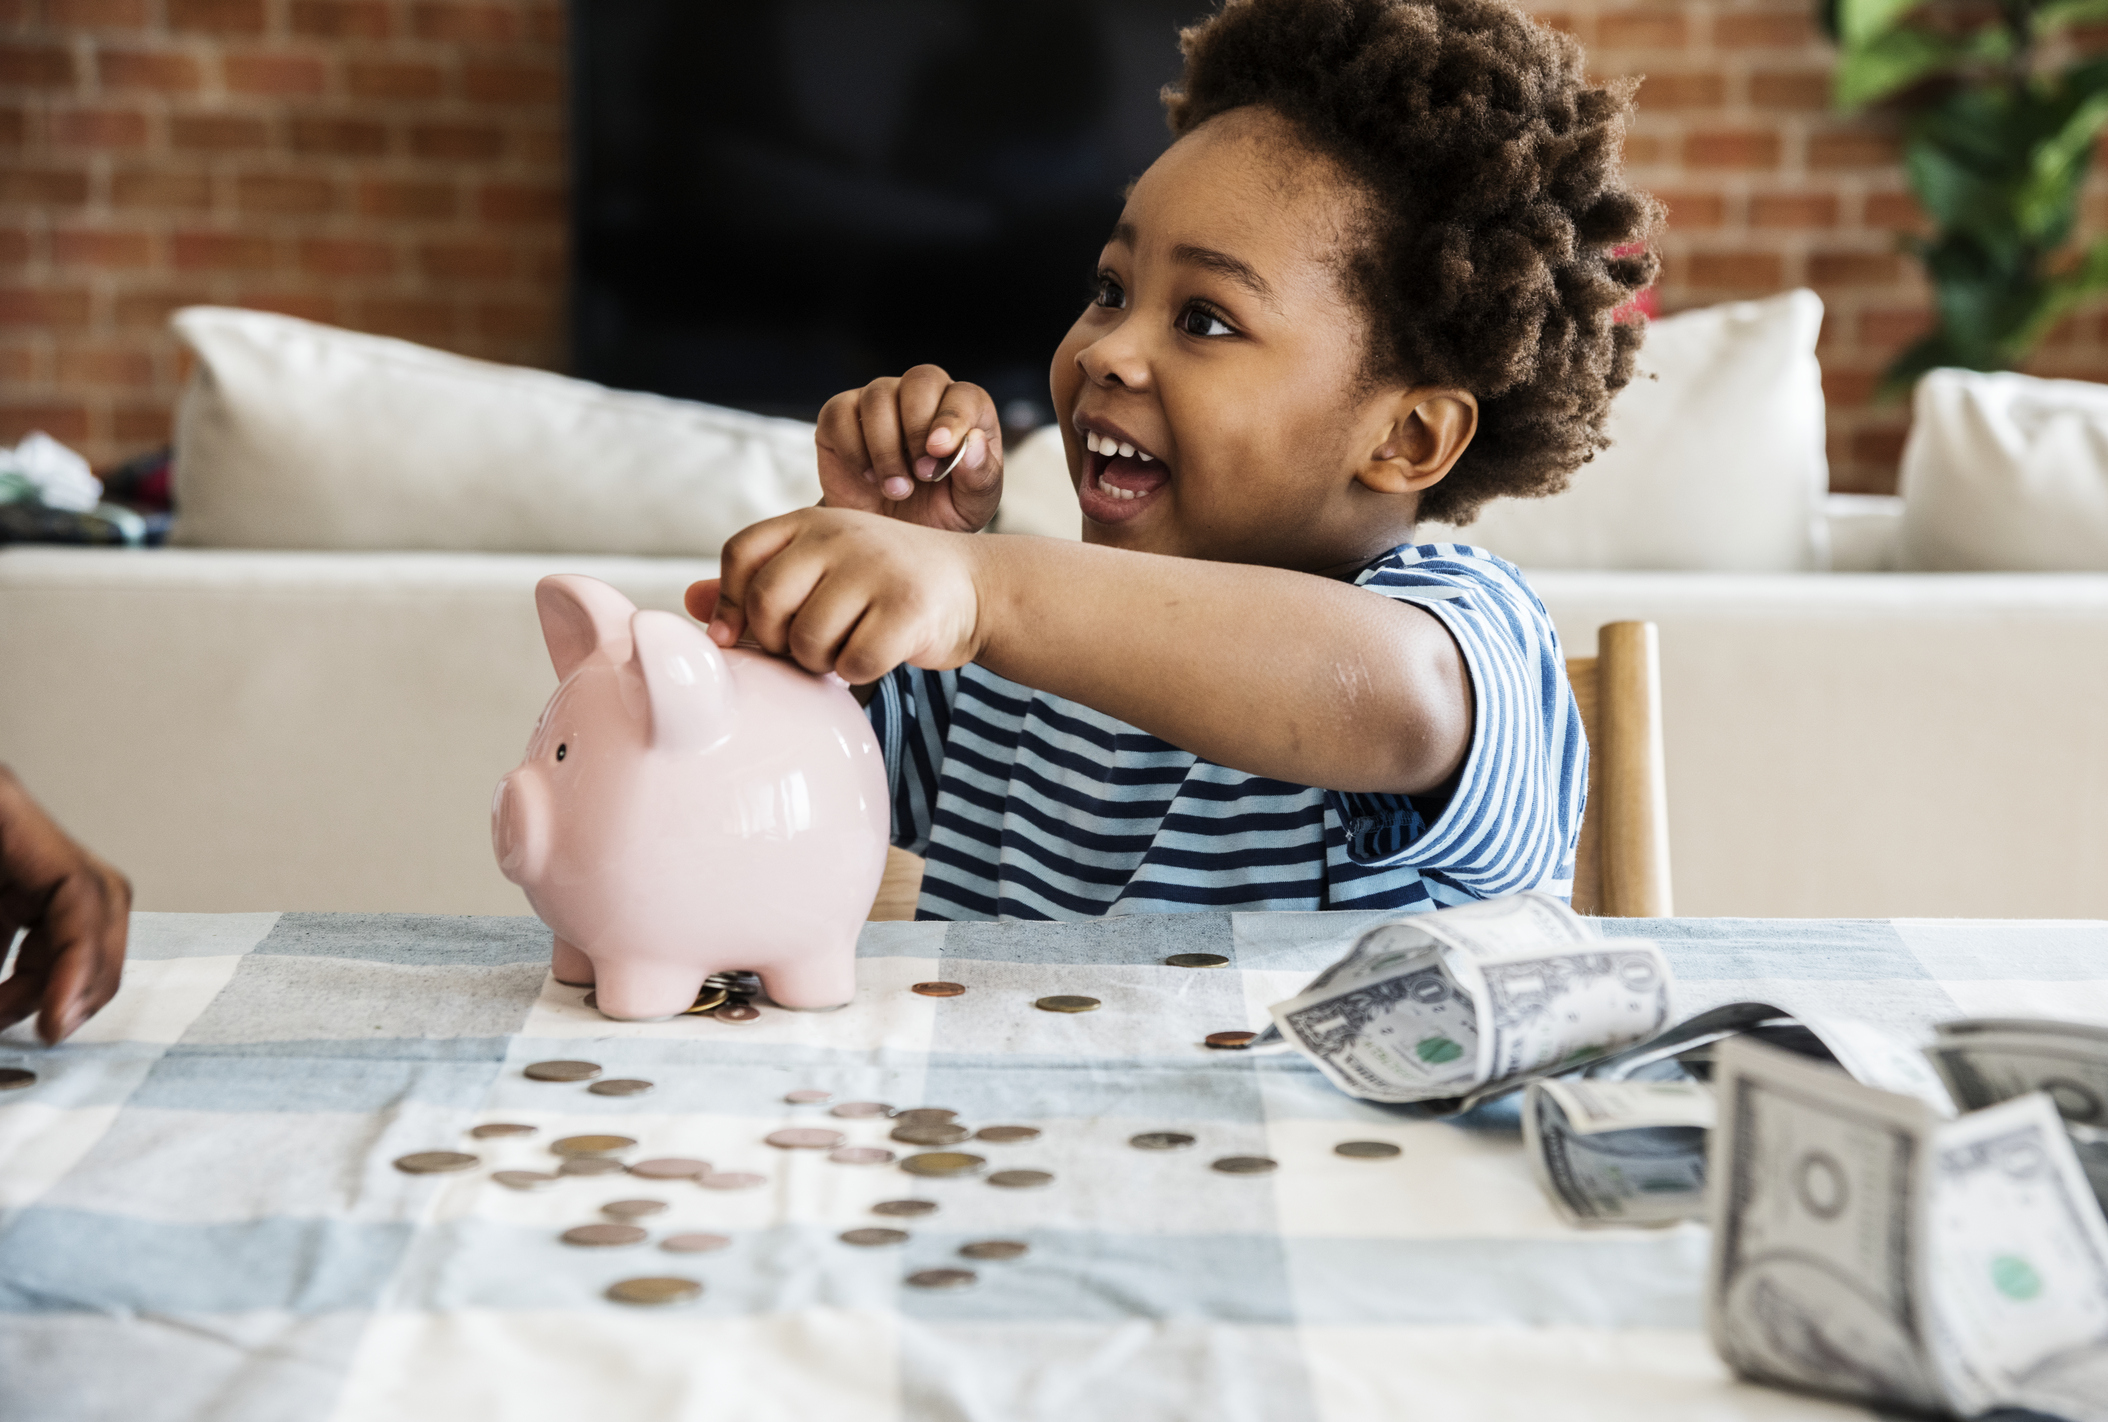 A young child putting money into a piggy bank.